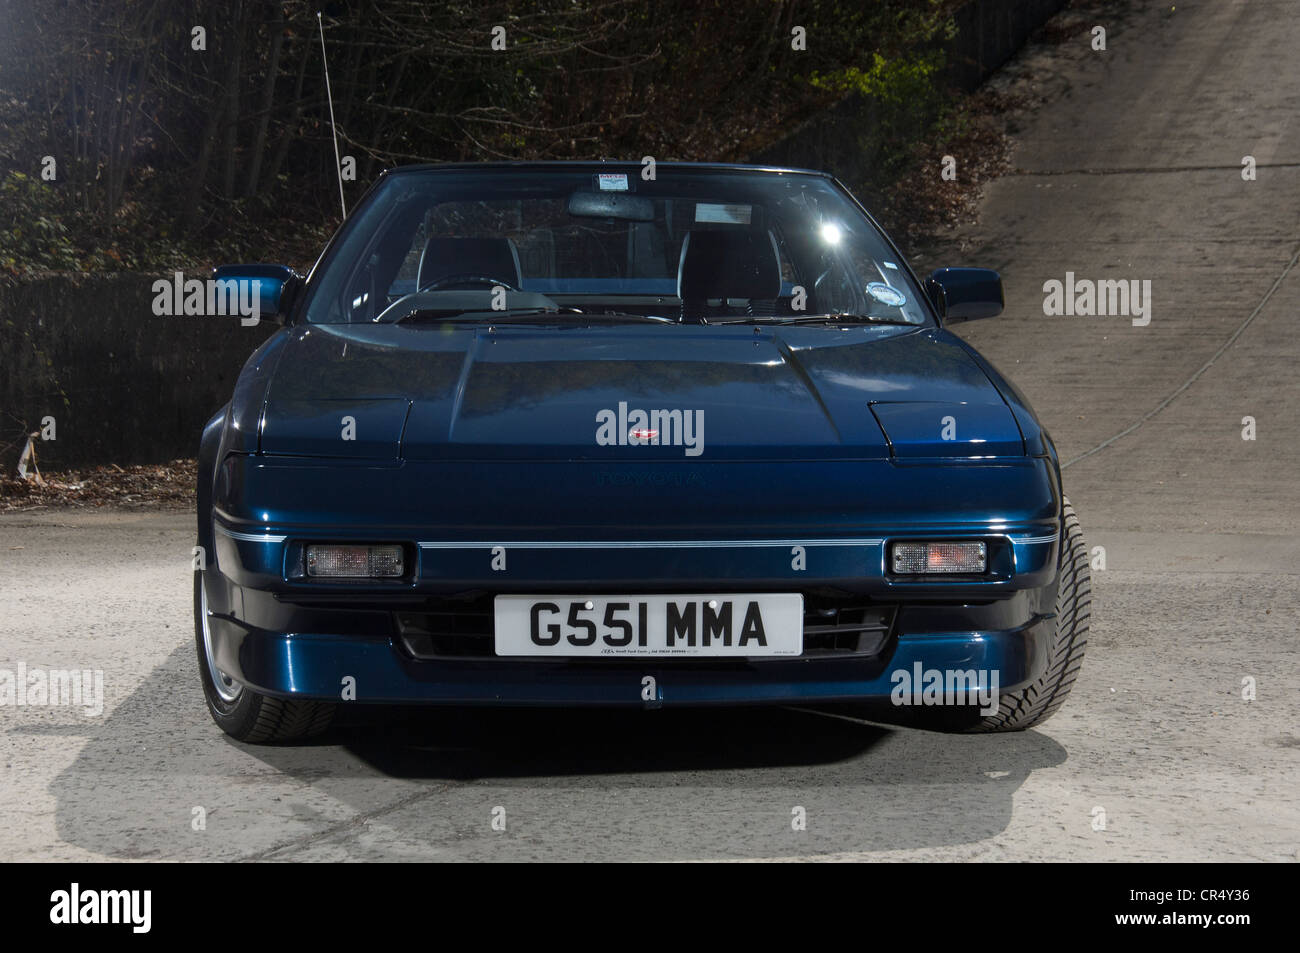 hight resolution of mk1 toyota mr2 mid engine sports car